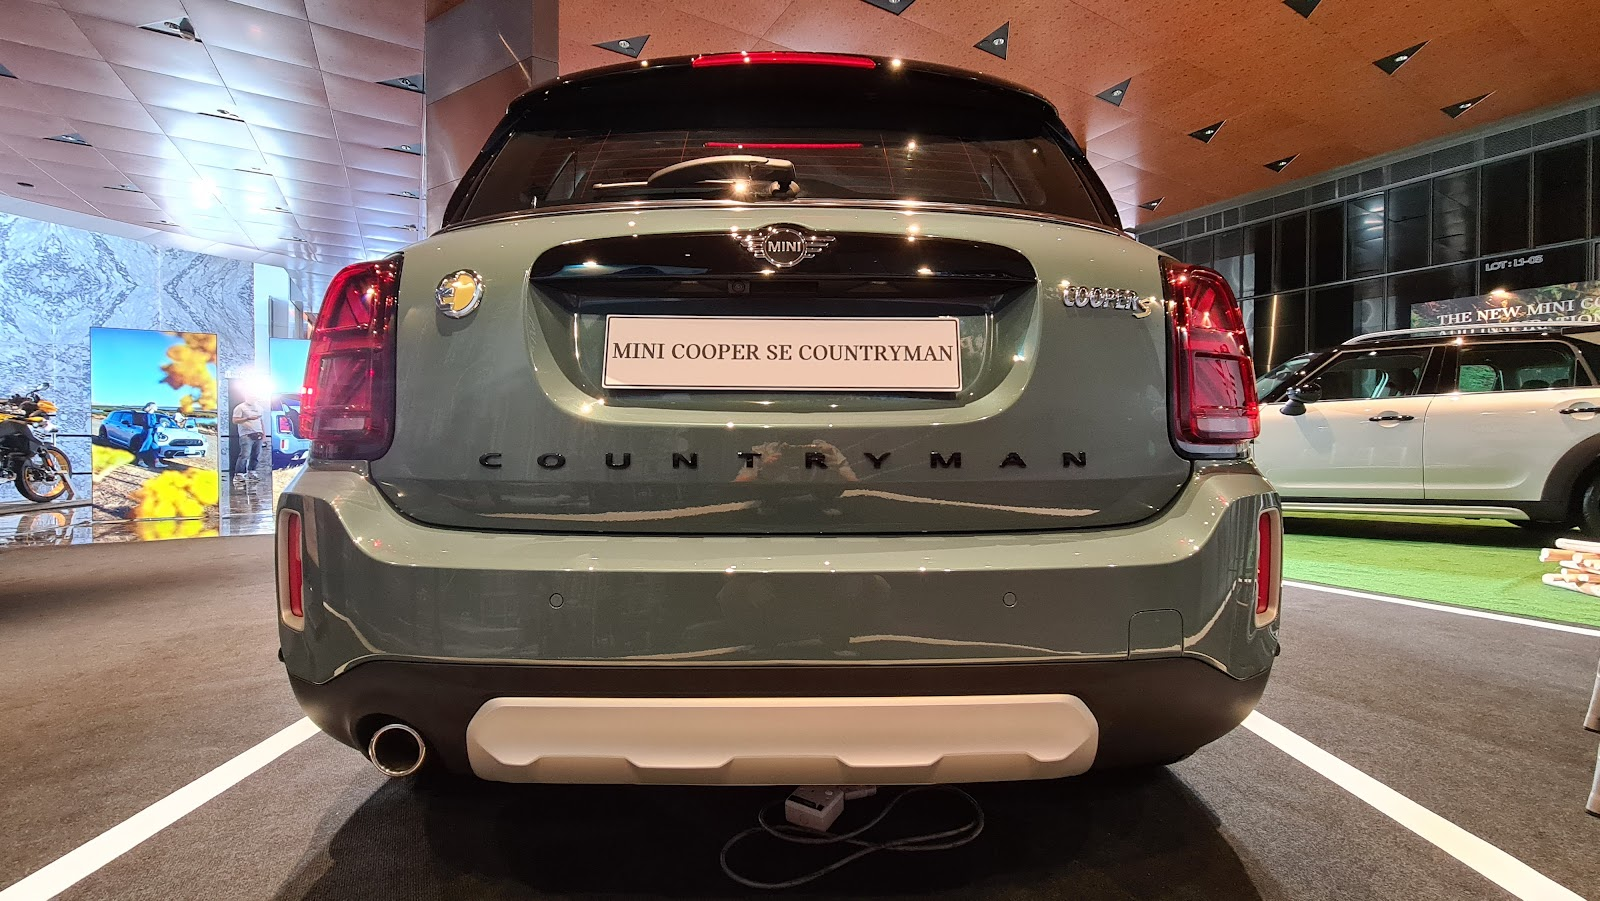 2021 MINI Cooper SE Countryman Rear View